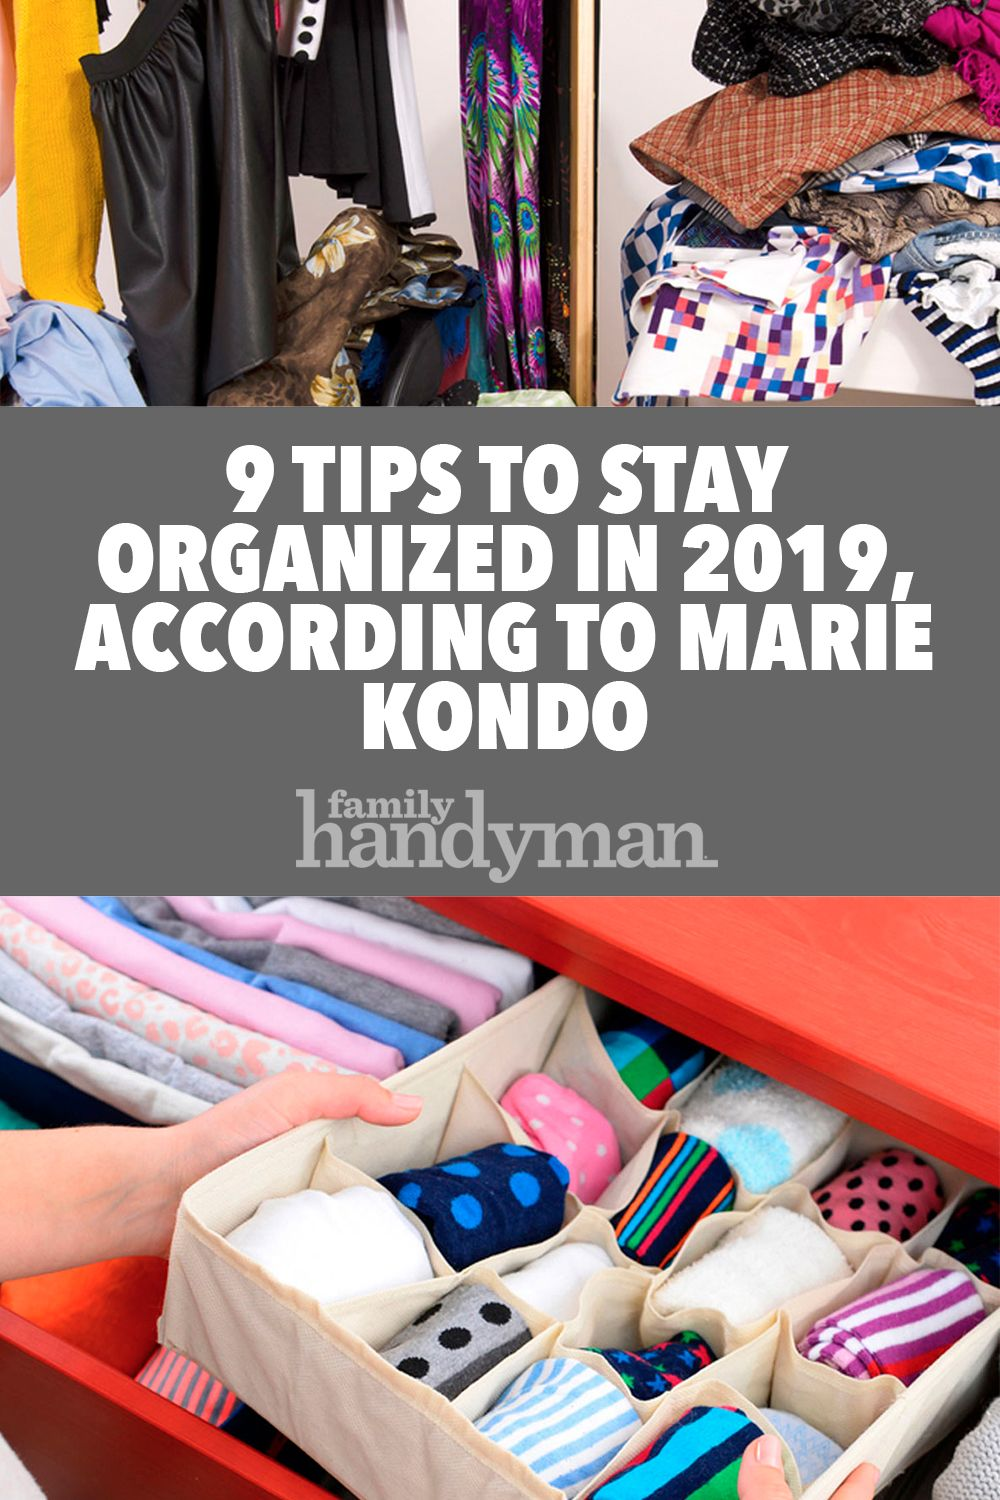 9 tips to stay organized in 2019, according to marie kondo